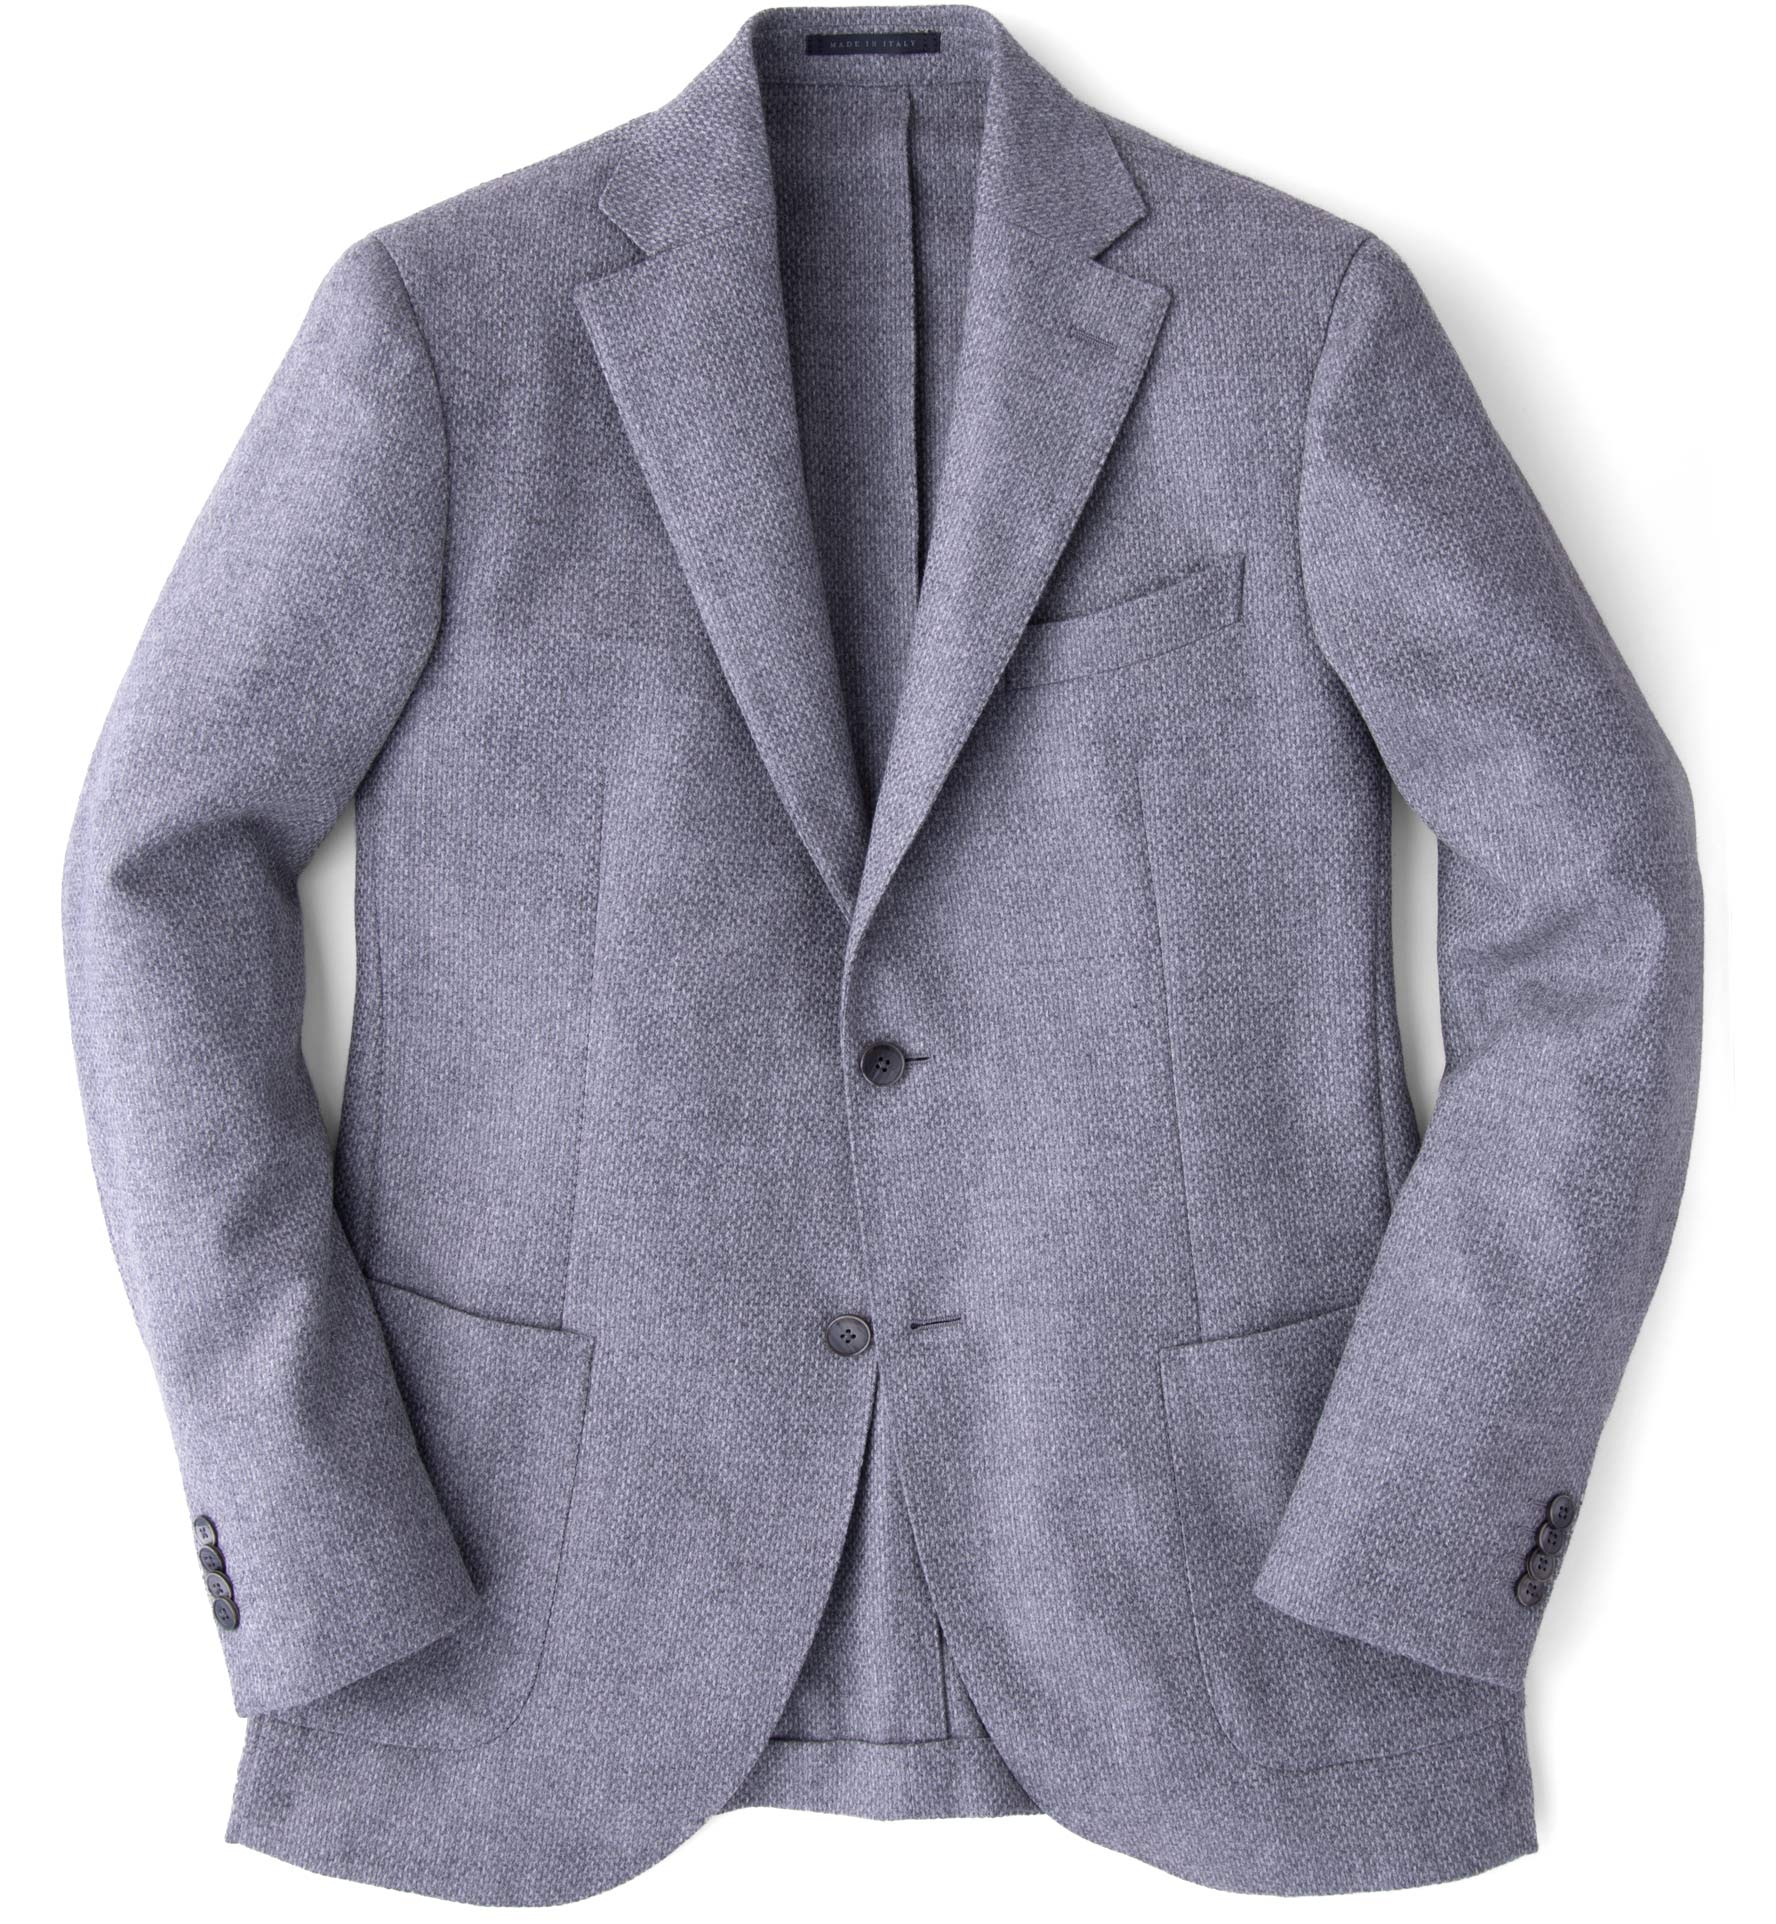 Zoom Image of Genova Grey Wool Cashmere Basketweave Jacket